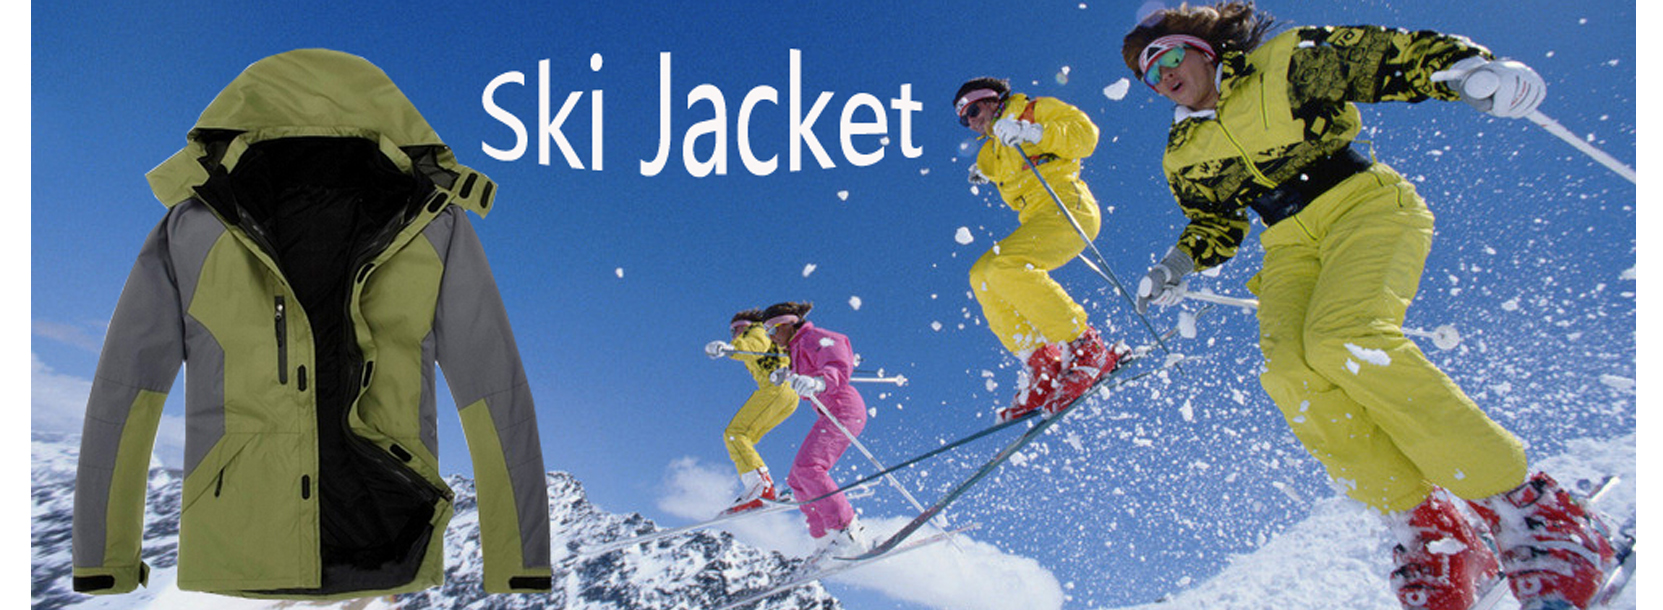 Waterproof Ski Jacket